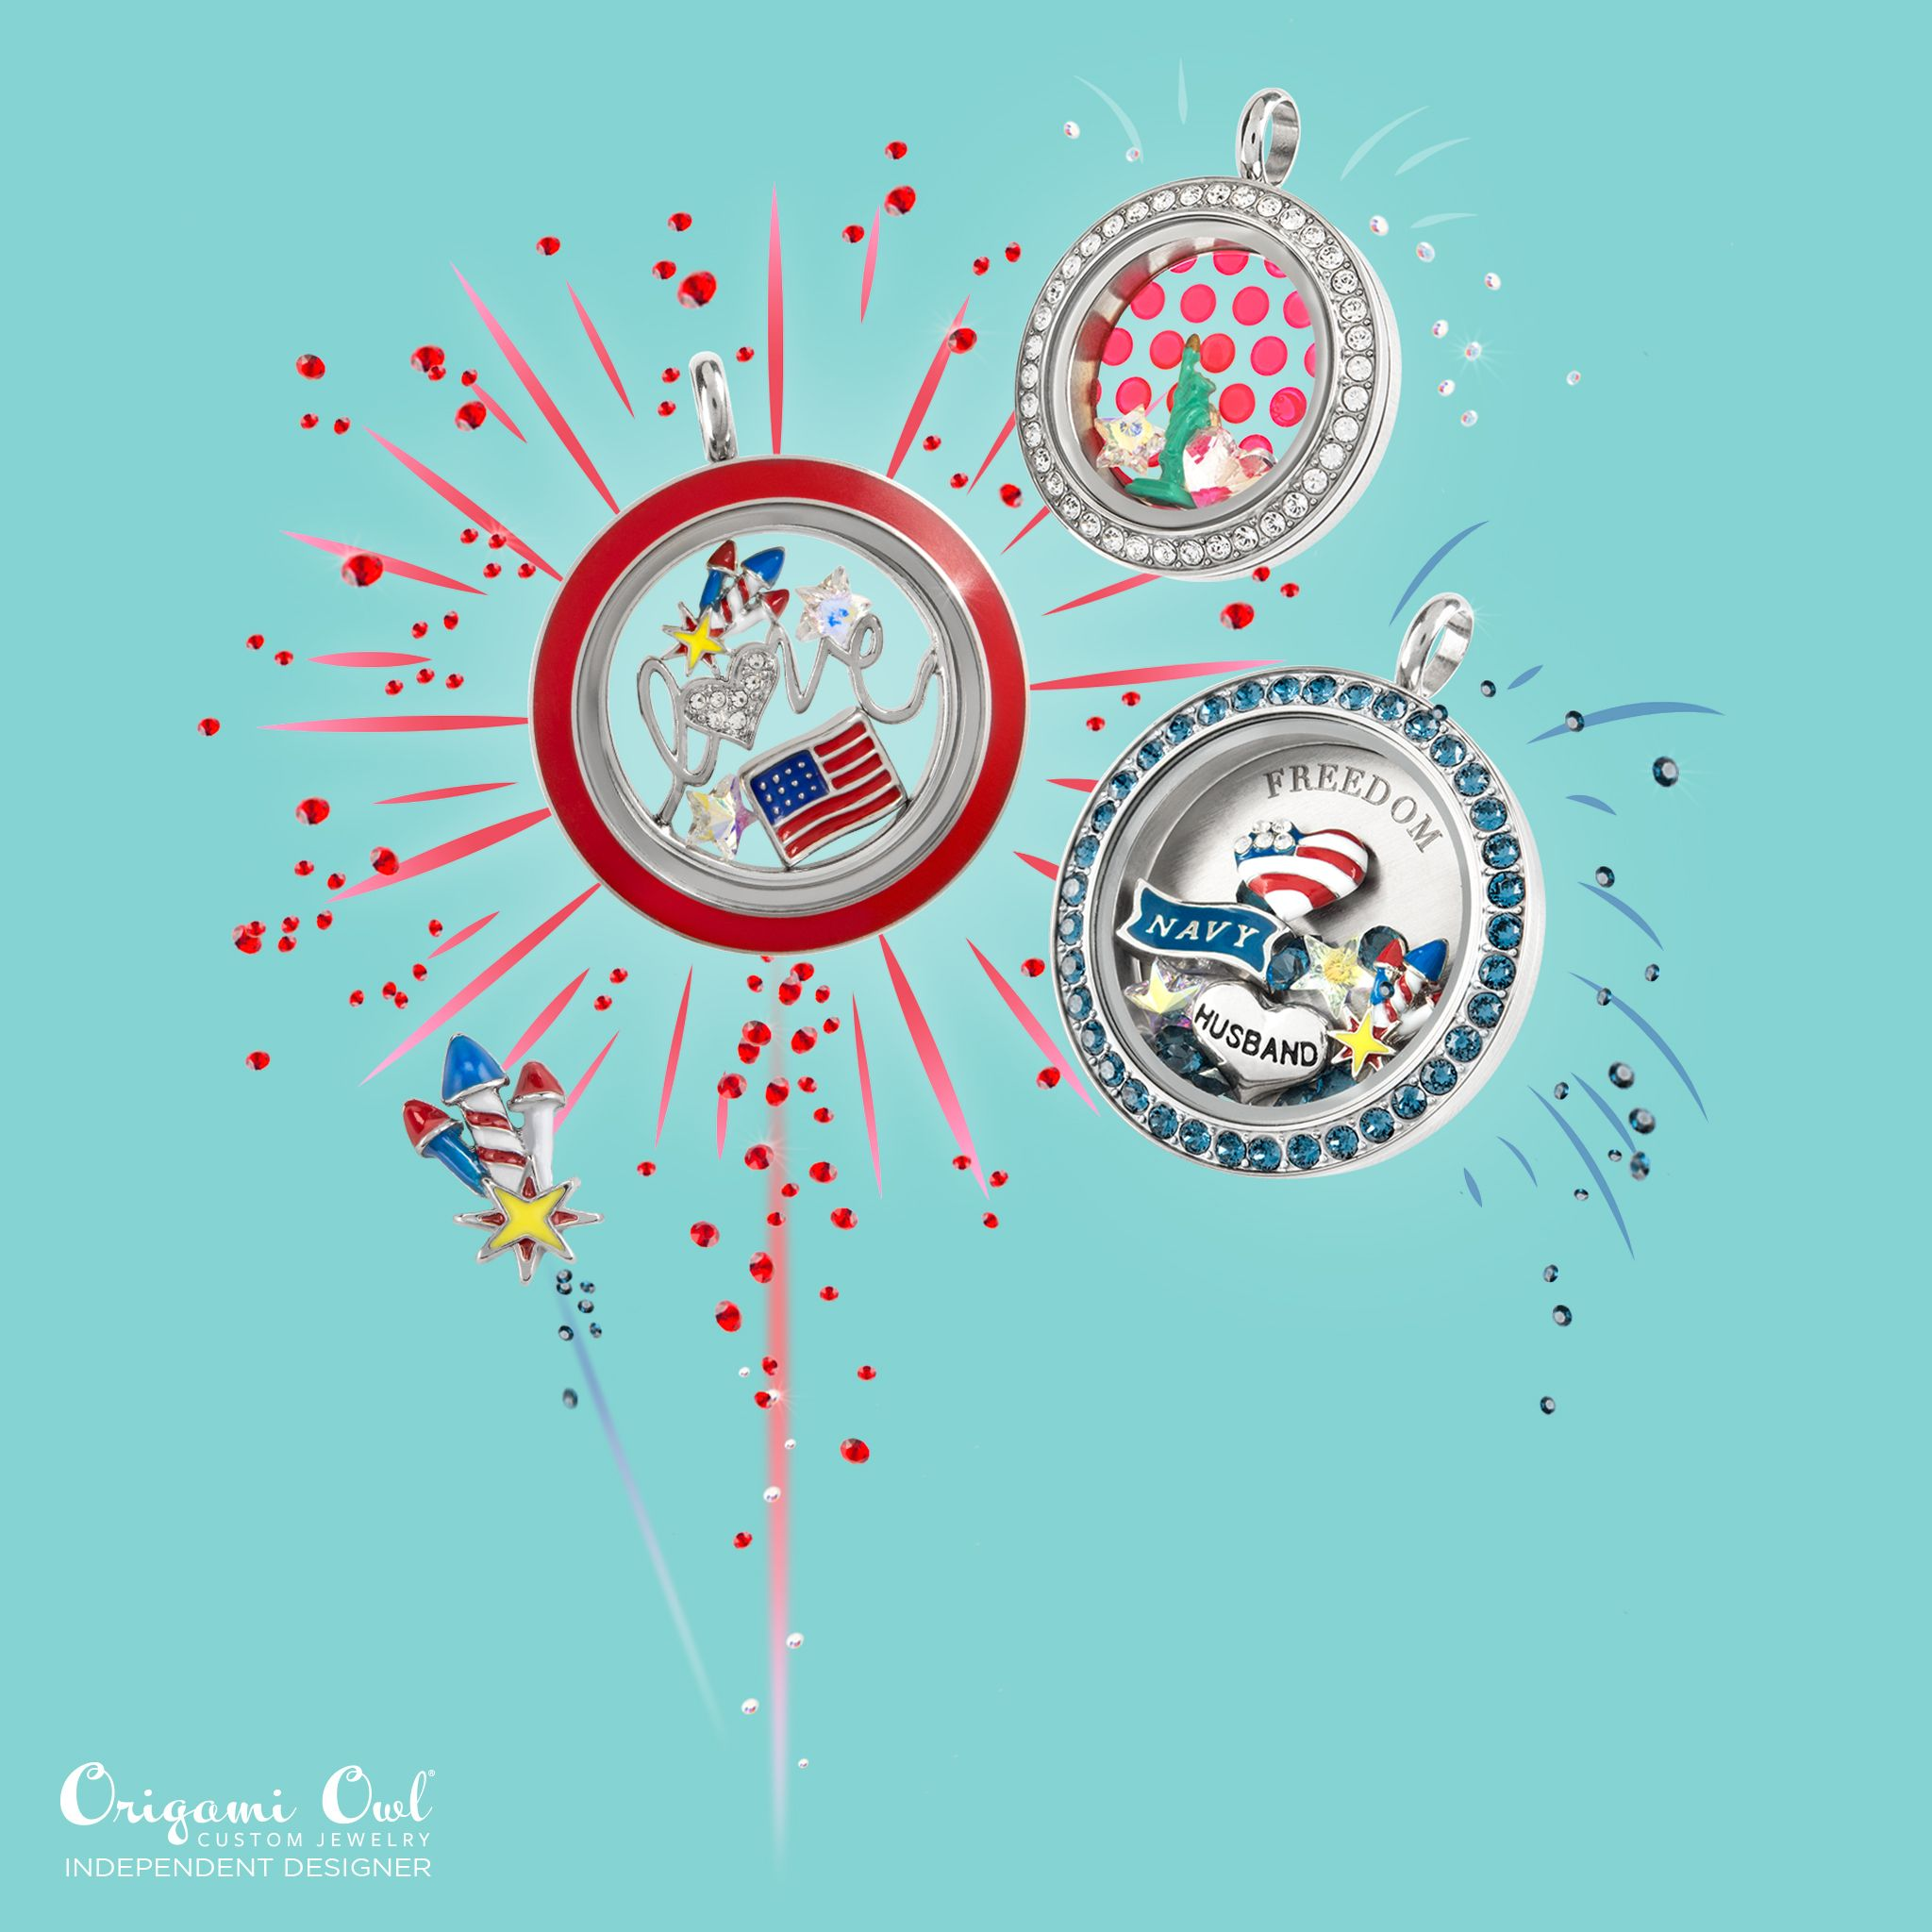 Origami owl summer 2016 collection origami owl julie perez origami owl summer collection 2016 celebrate the of july with this living locket perfect charms for where ever you choose to spend your summer vacation jeuxipadfo Gallery